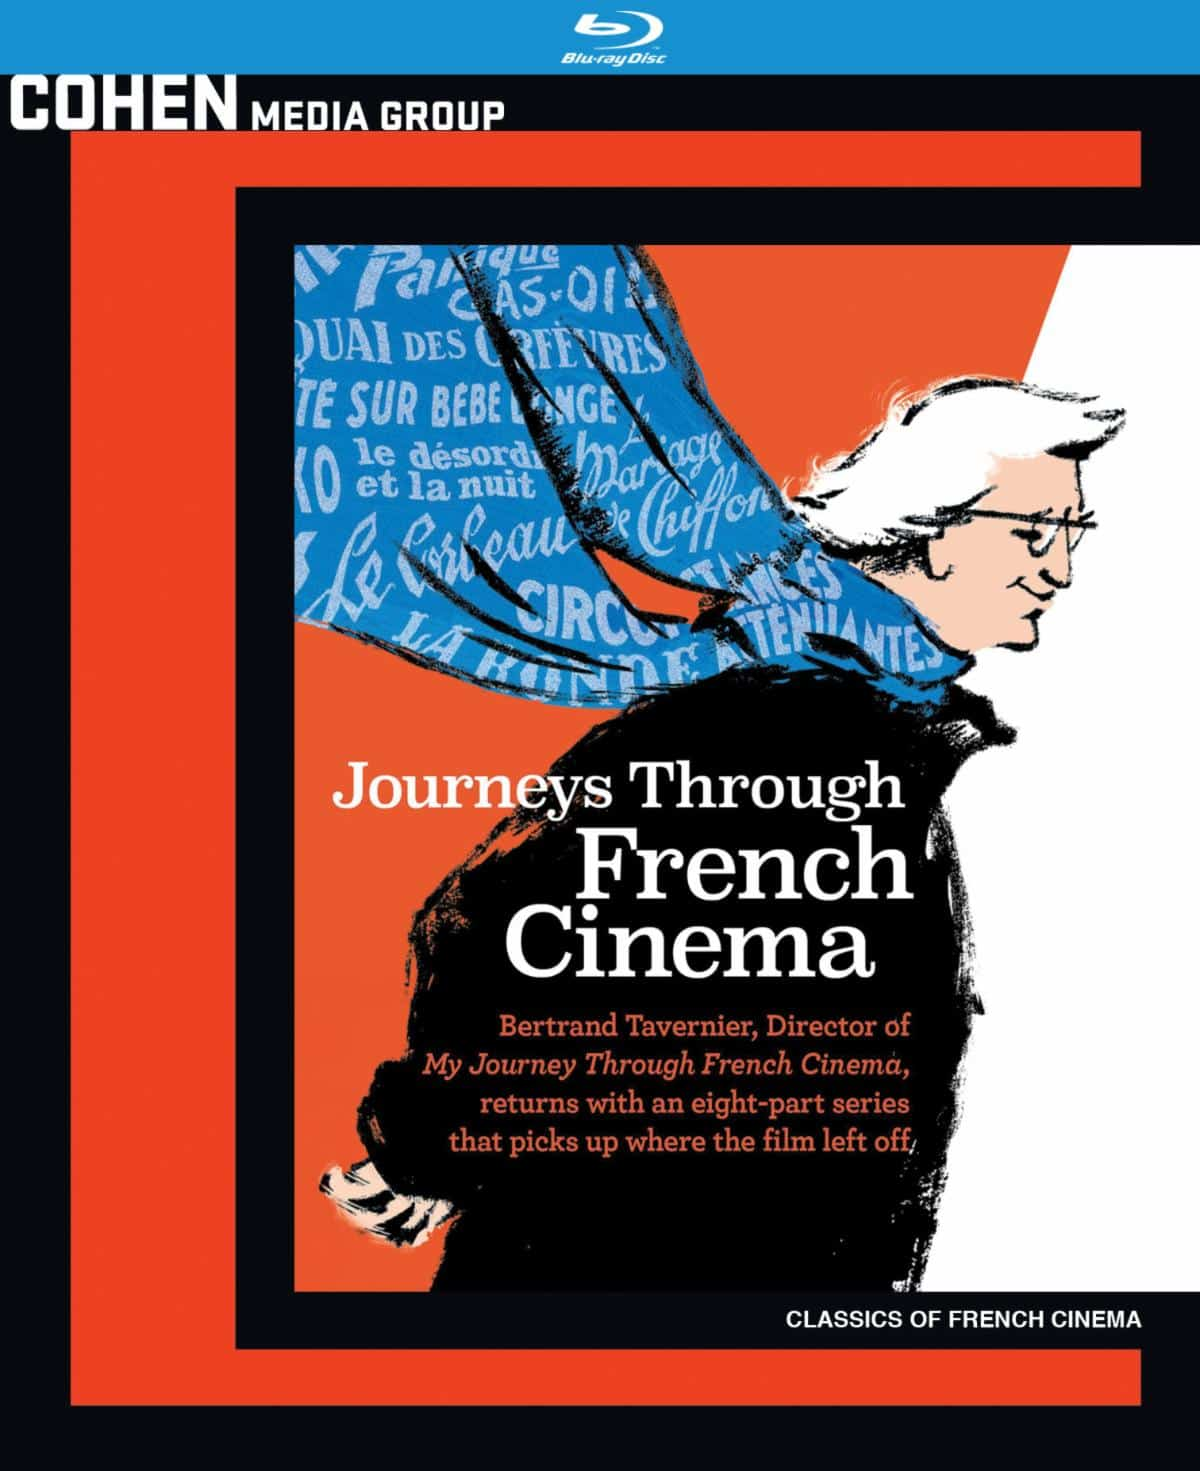 Journeys Through French Cinema Cohen Blu-ray review pile